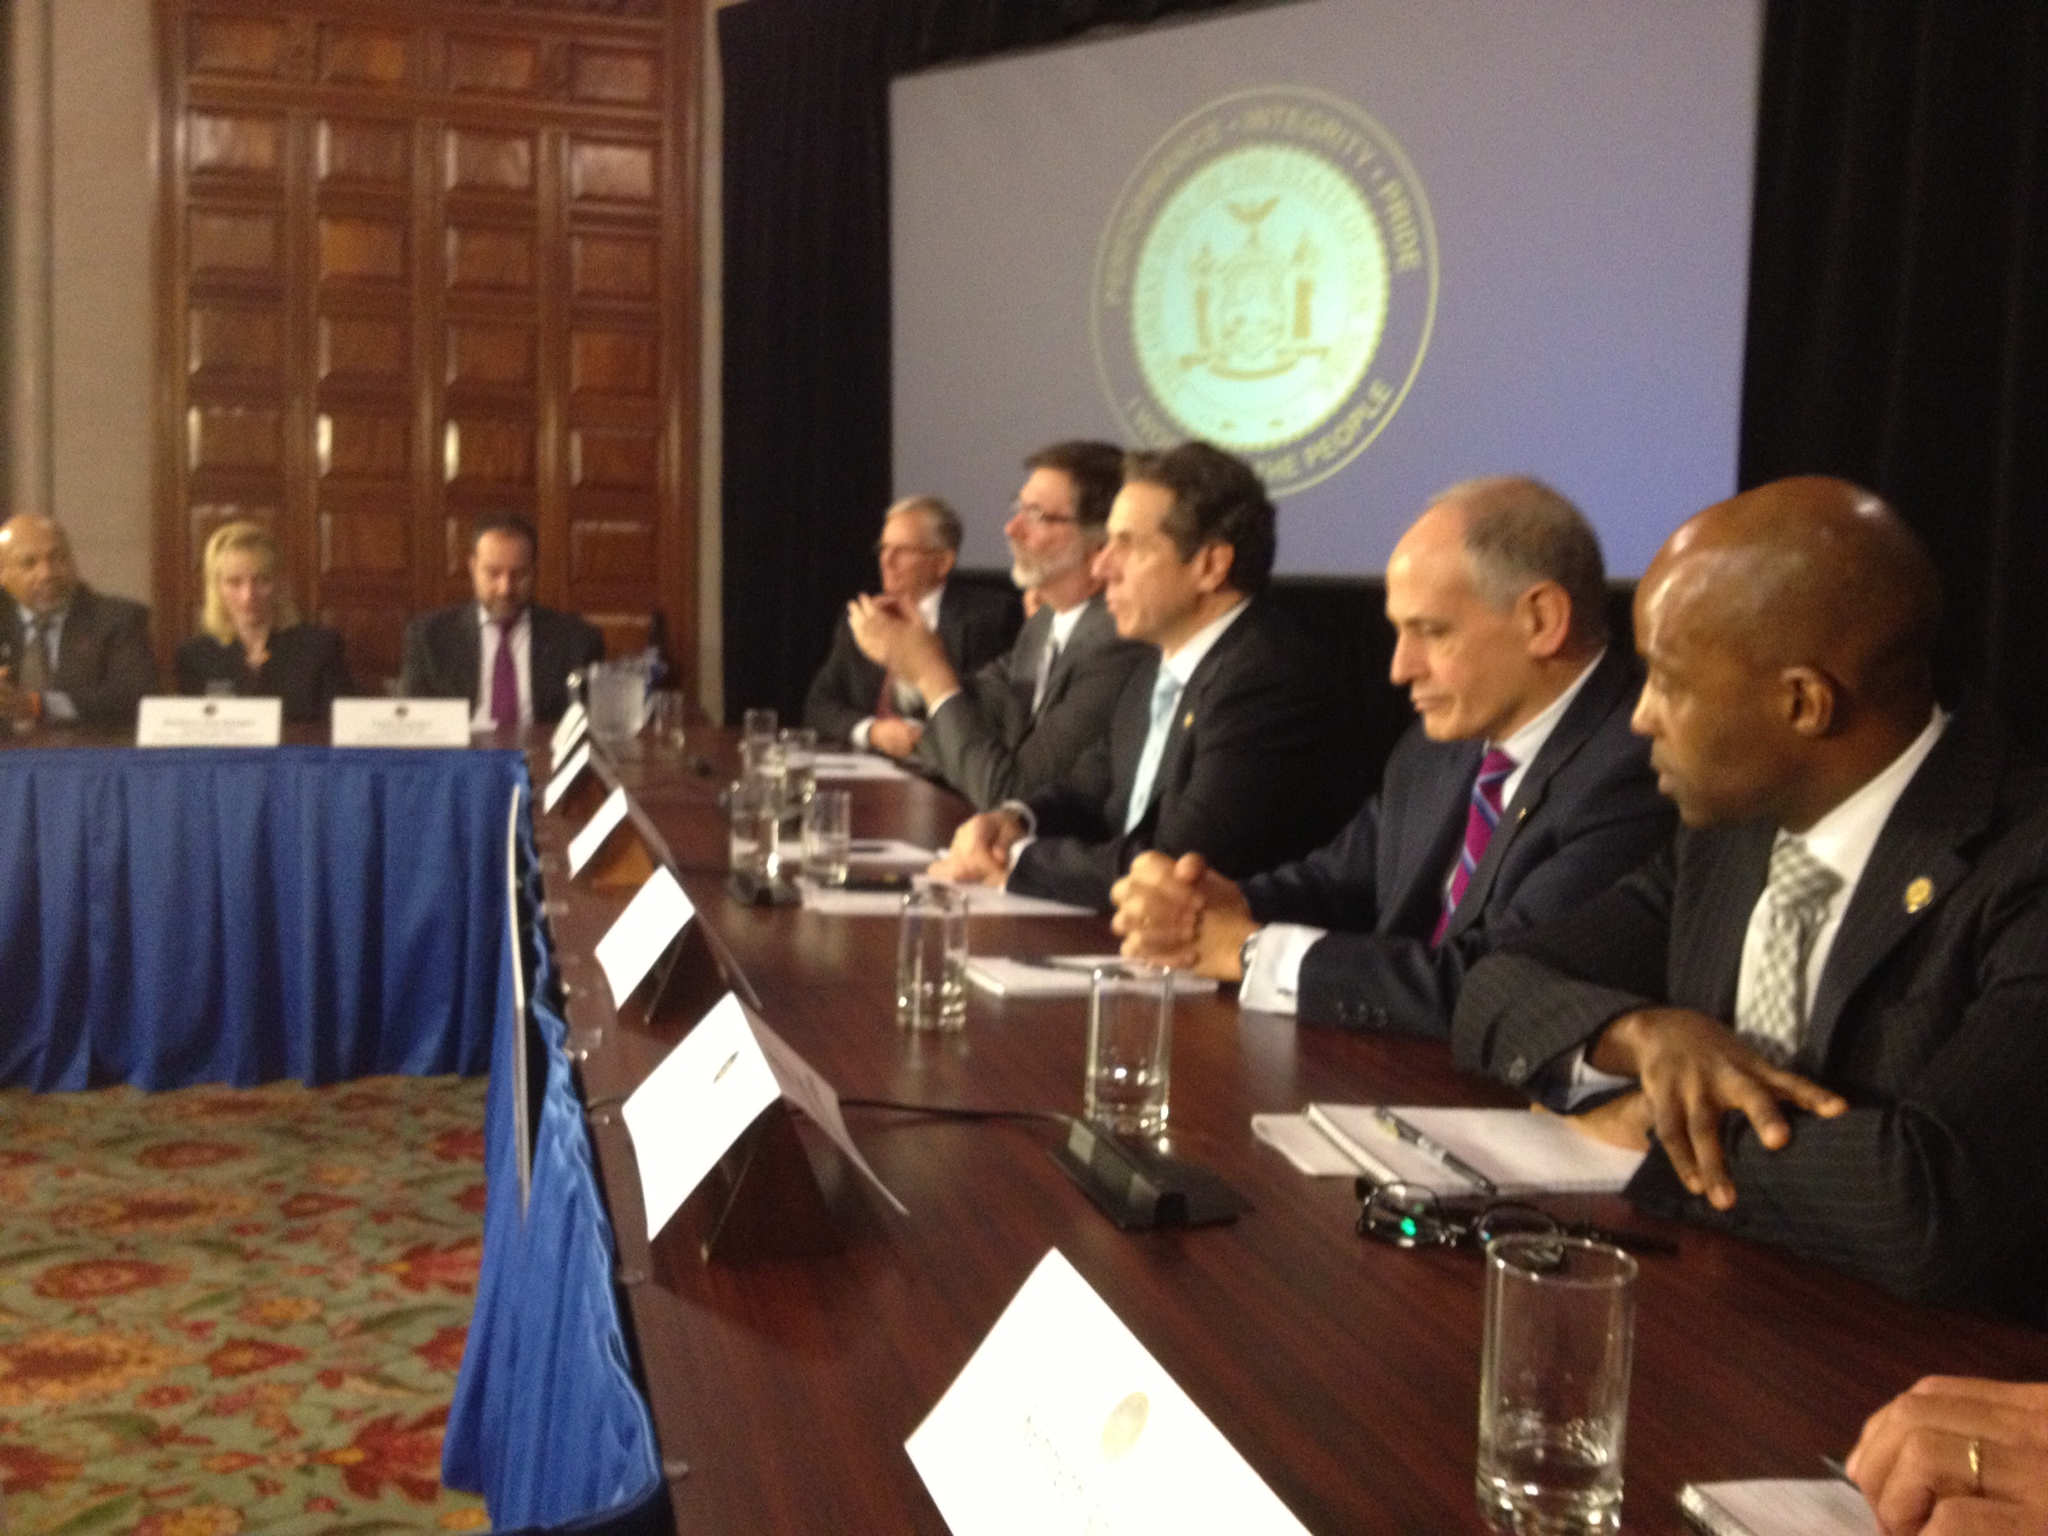 Governor Cuomo Announces Plans for $2B in Tax Relief for New York